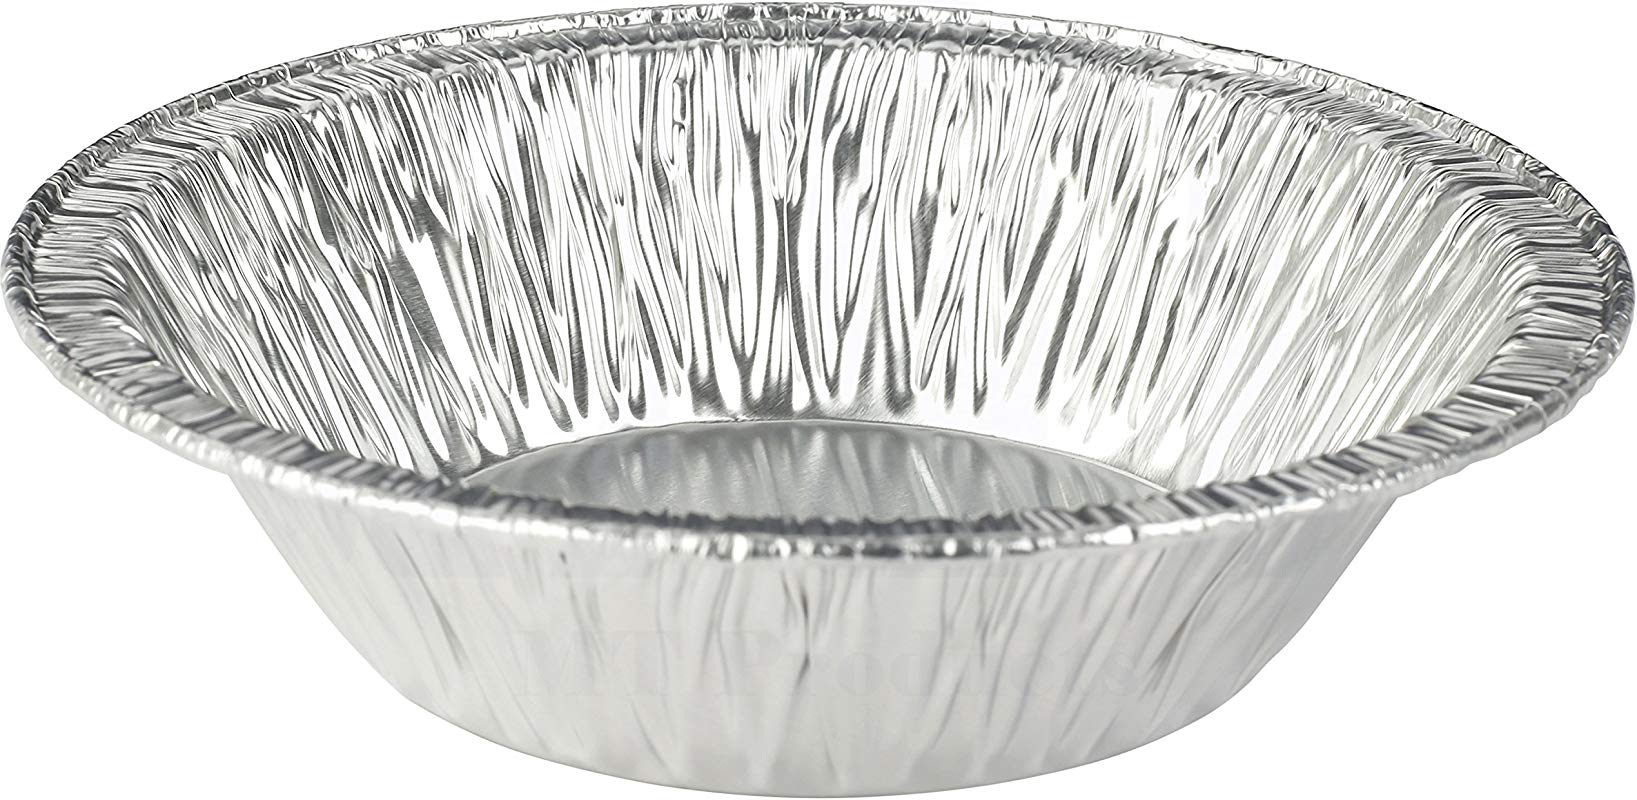 MT Products 5 Inch Disposable Aluminum Foil Tart Pie Pan 1 1 4 Deep 50 Pieces